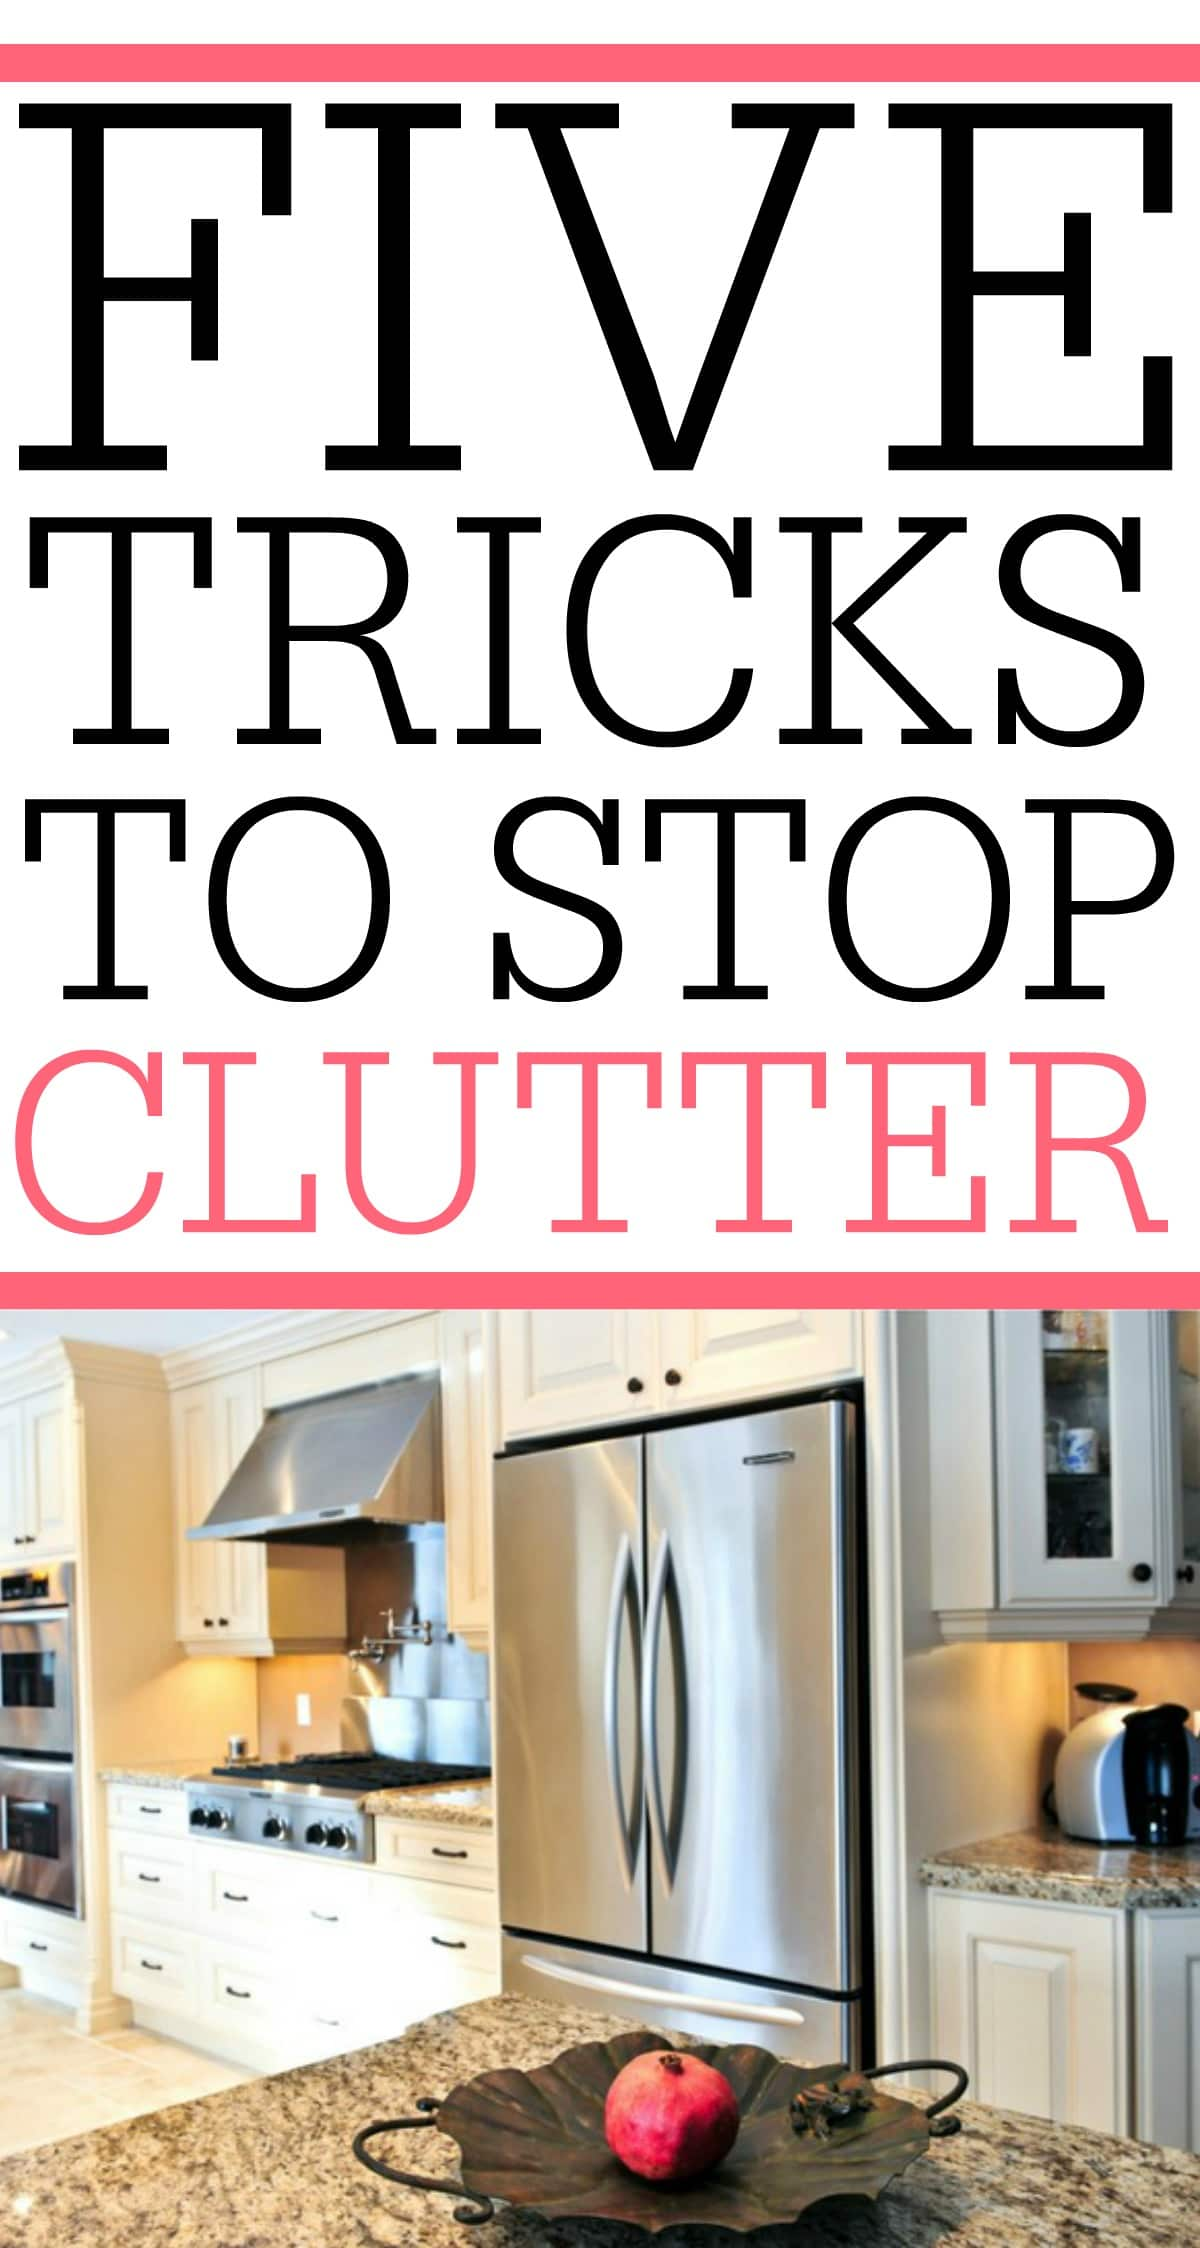 Tired of all the clutter in the house? Check out these 5 tricks to stop clutter.Your house can be clean and clutter free with just a few simple steps.